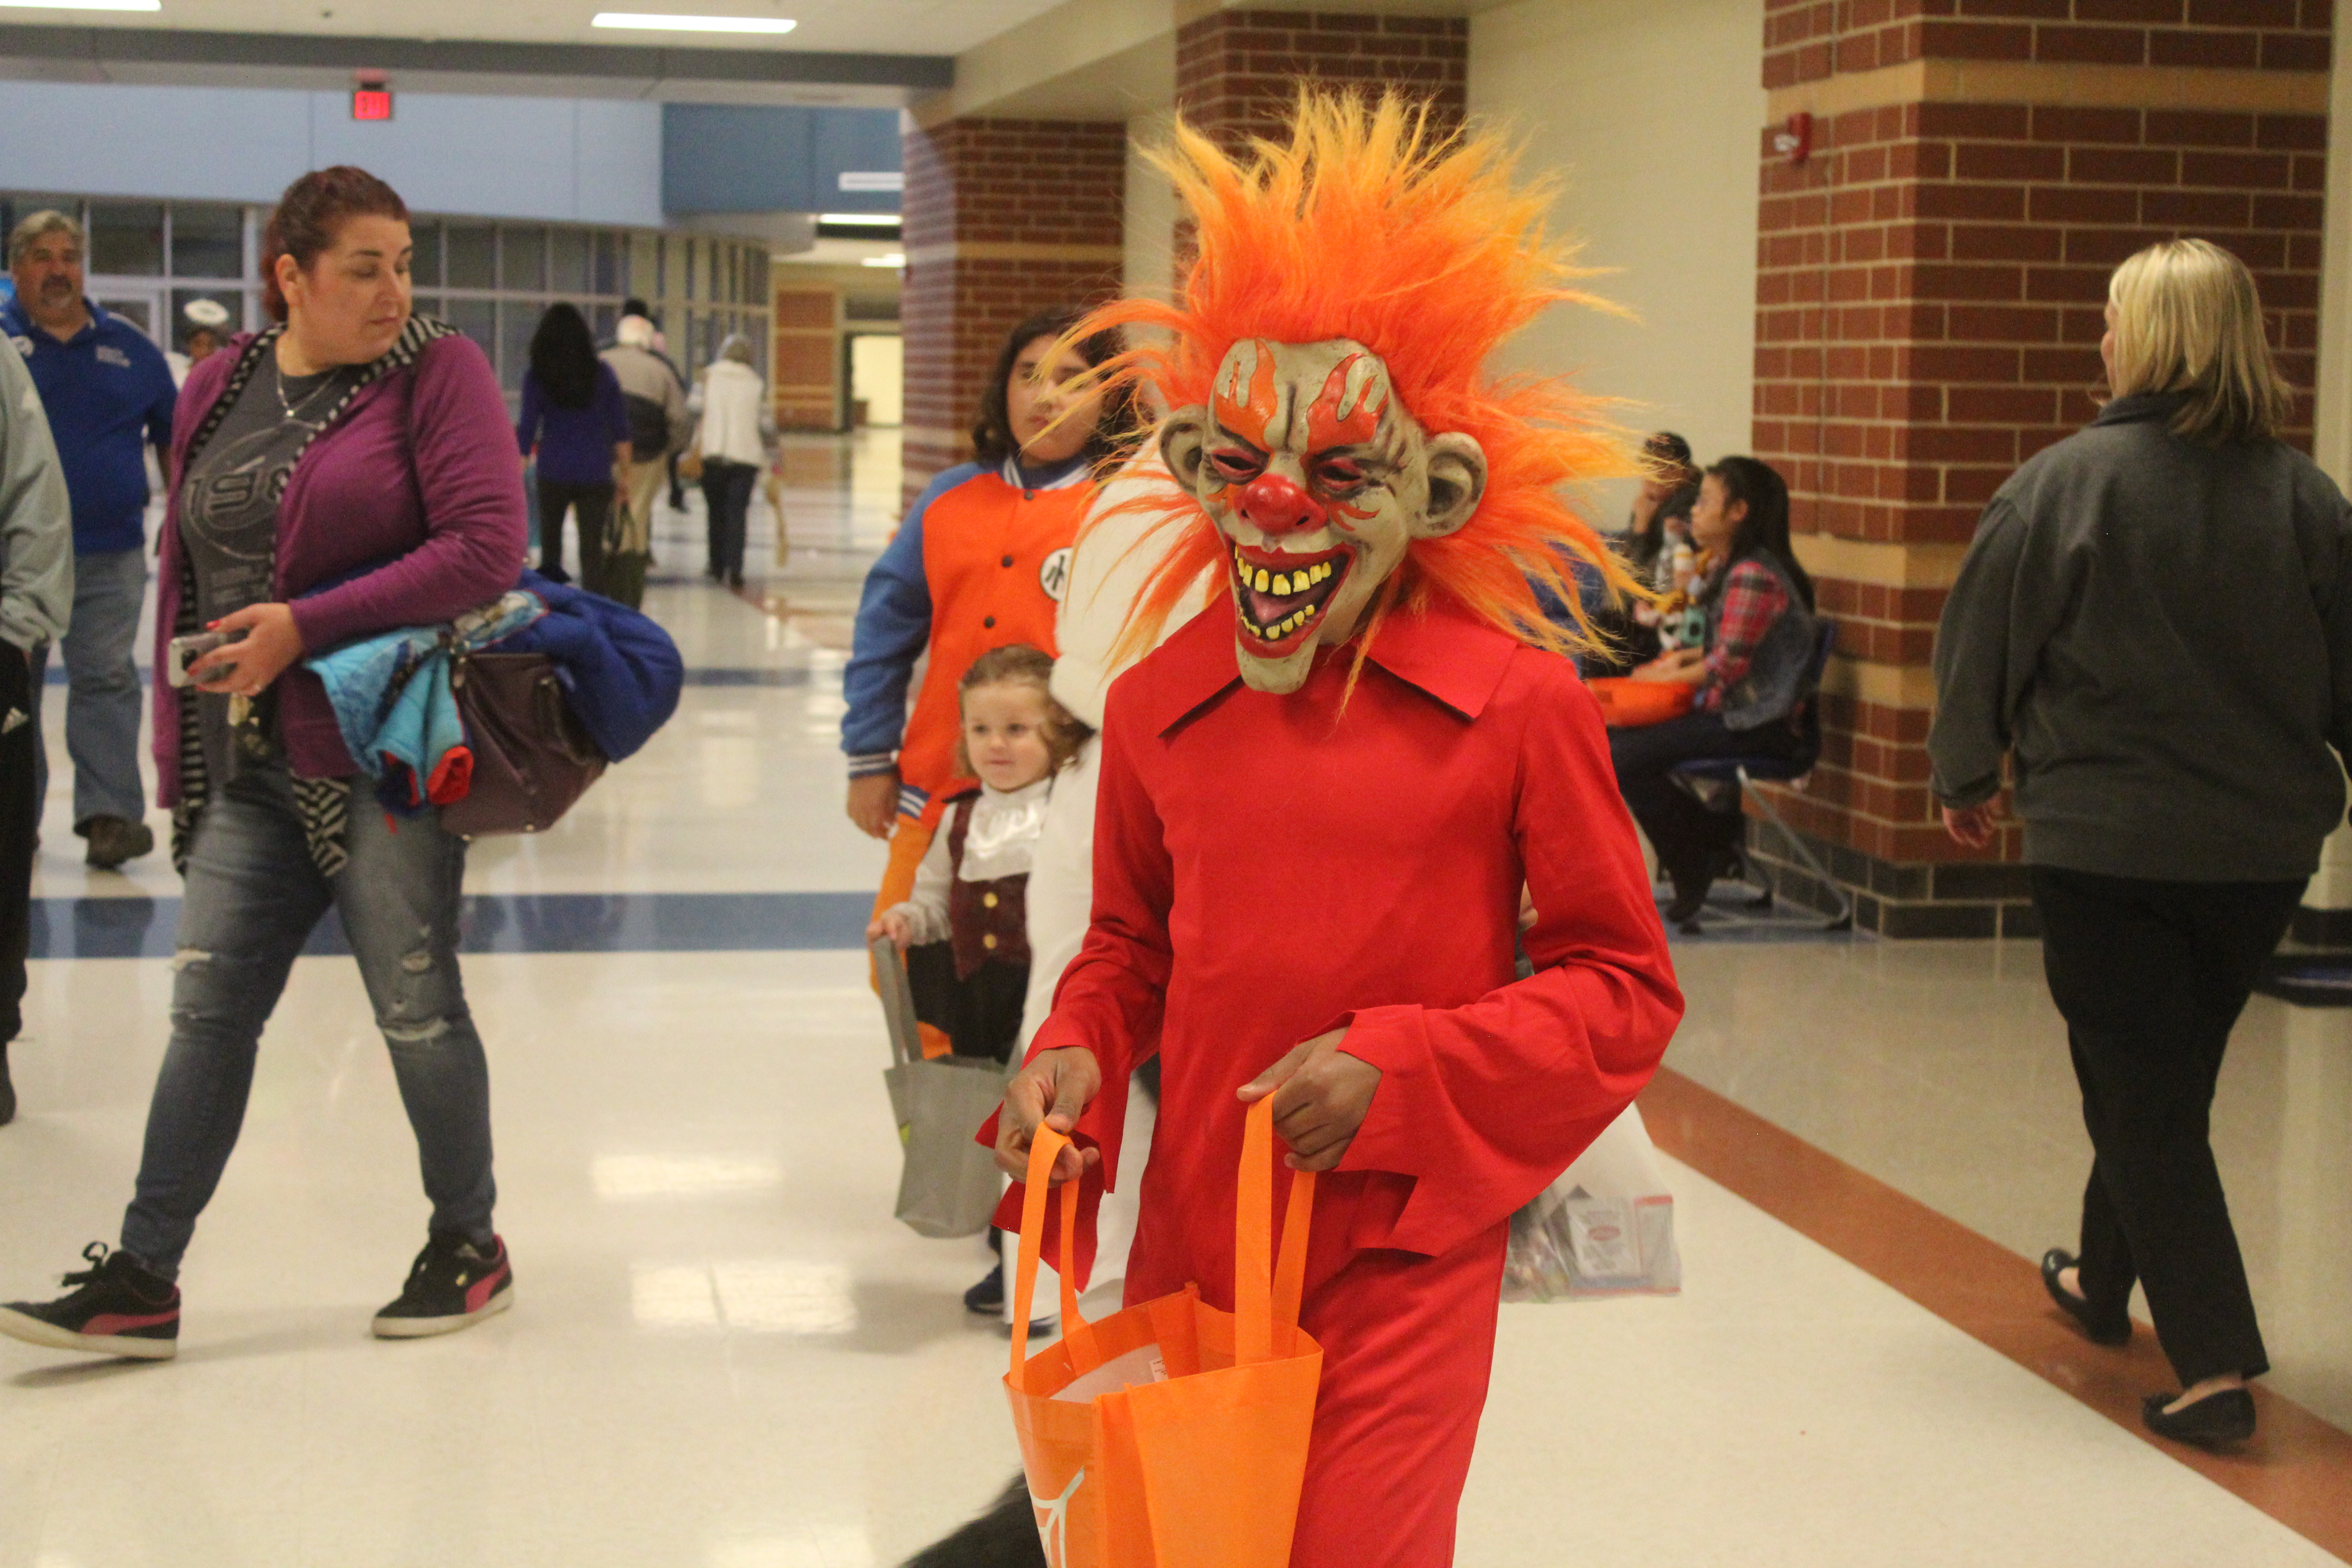 A student is dressed as a scary monster